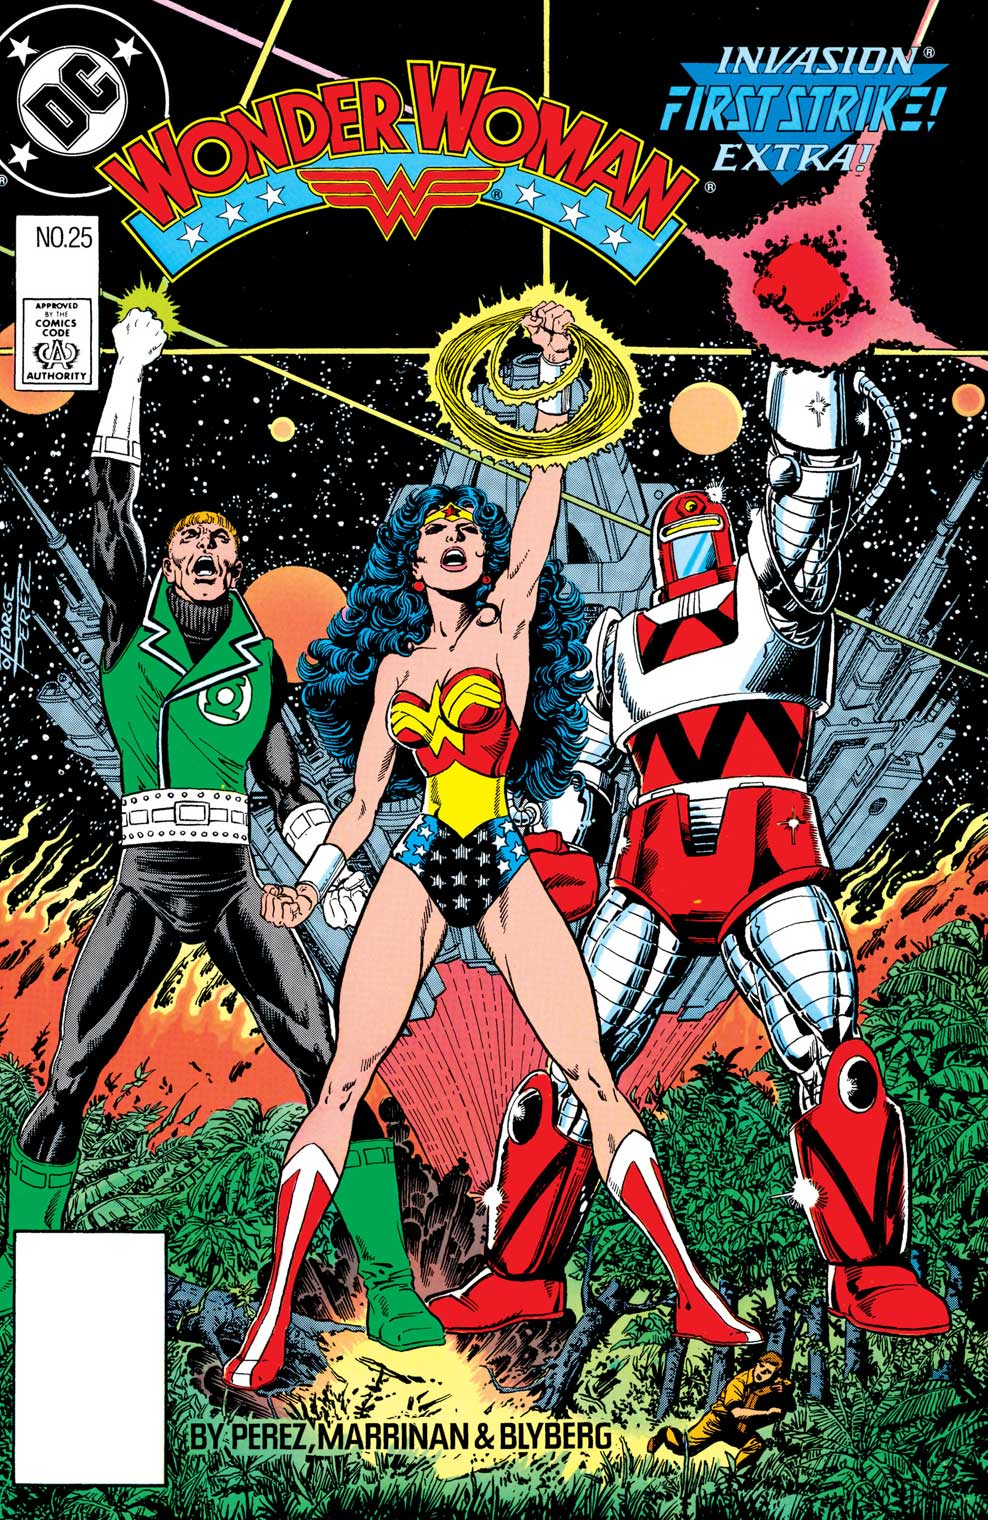 Wonder Woman #25 cover by George Perez featuring Guy Gardner and Rocket Red